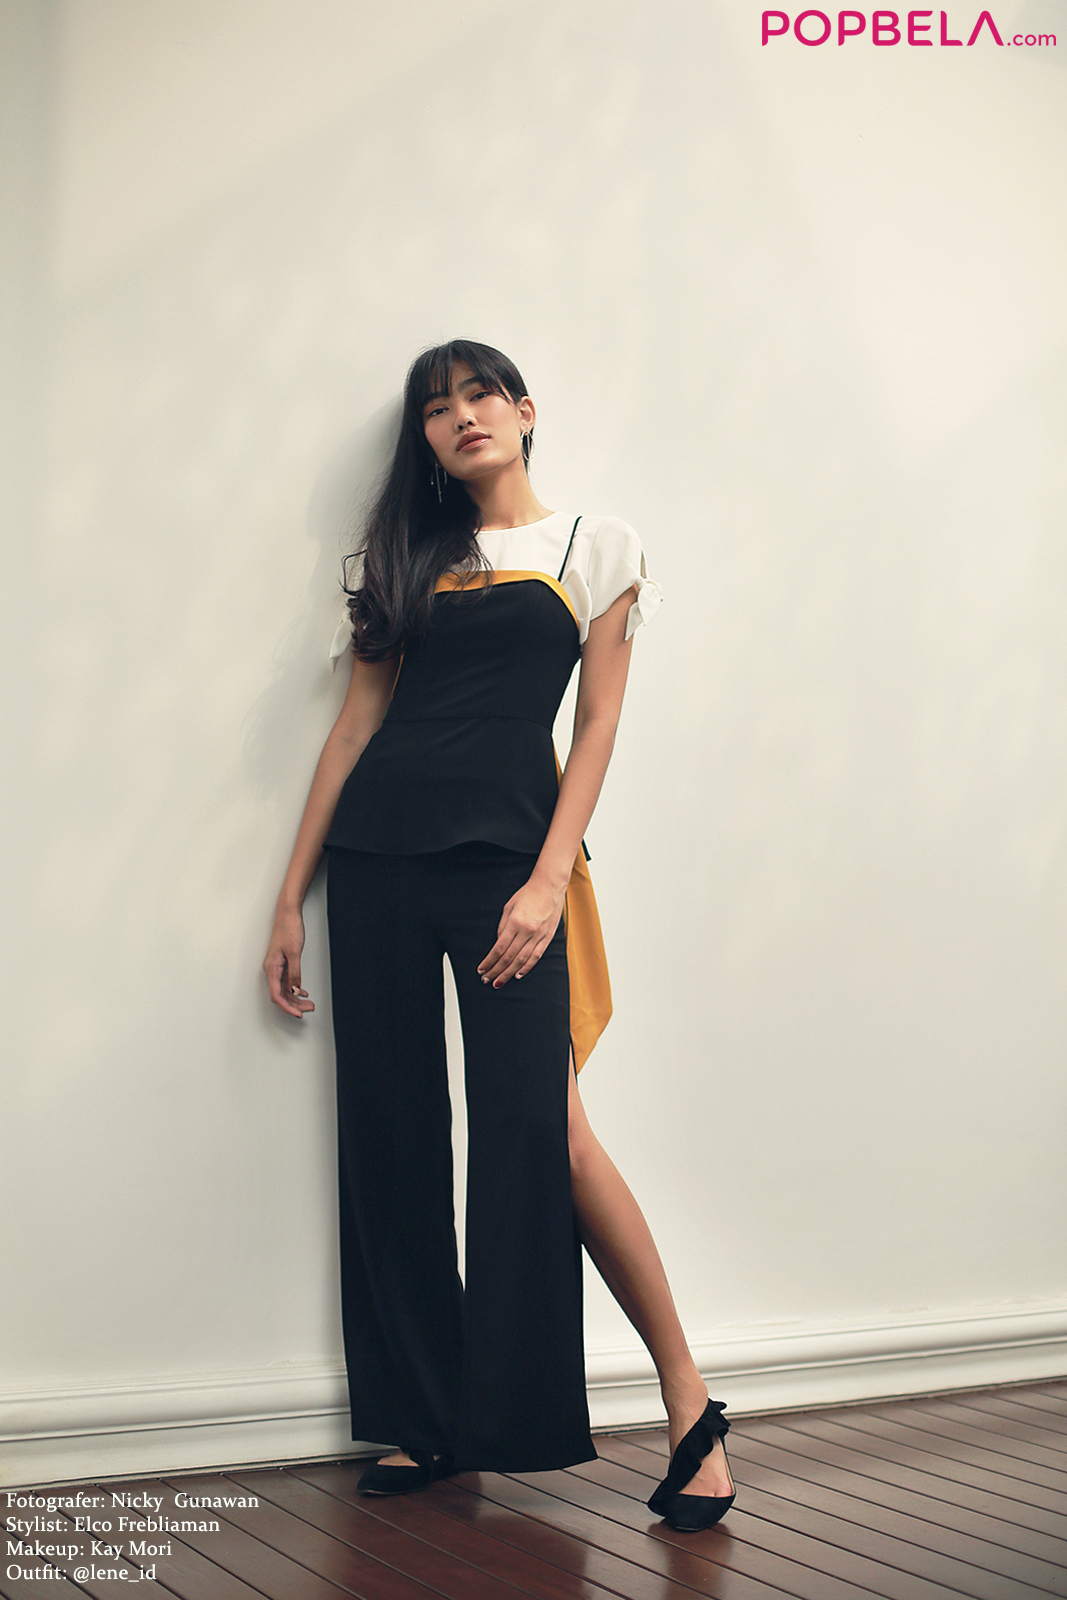 Alika Islamadina: Fashion is A Statement!